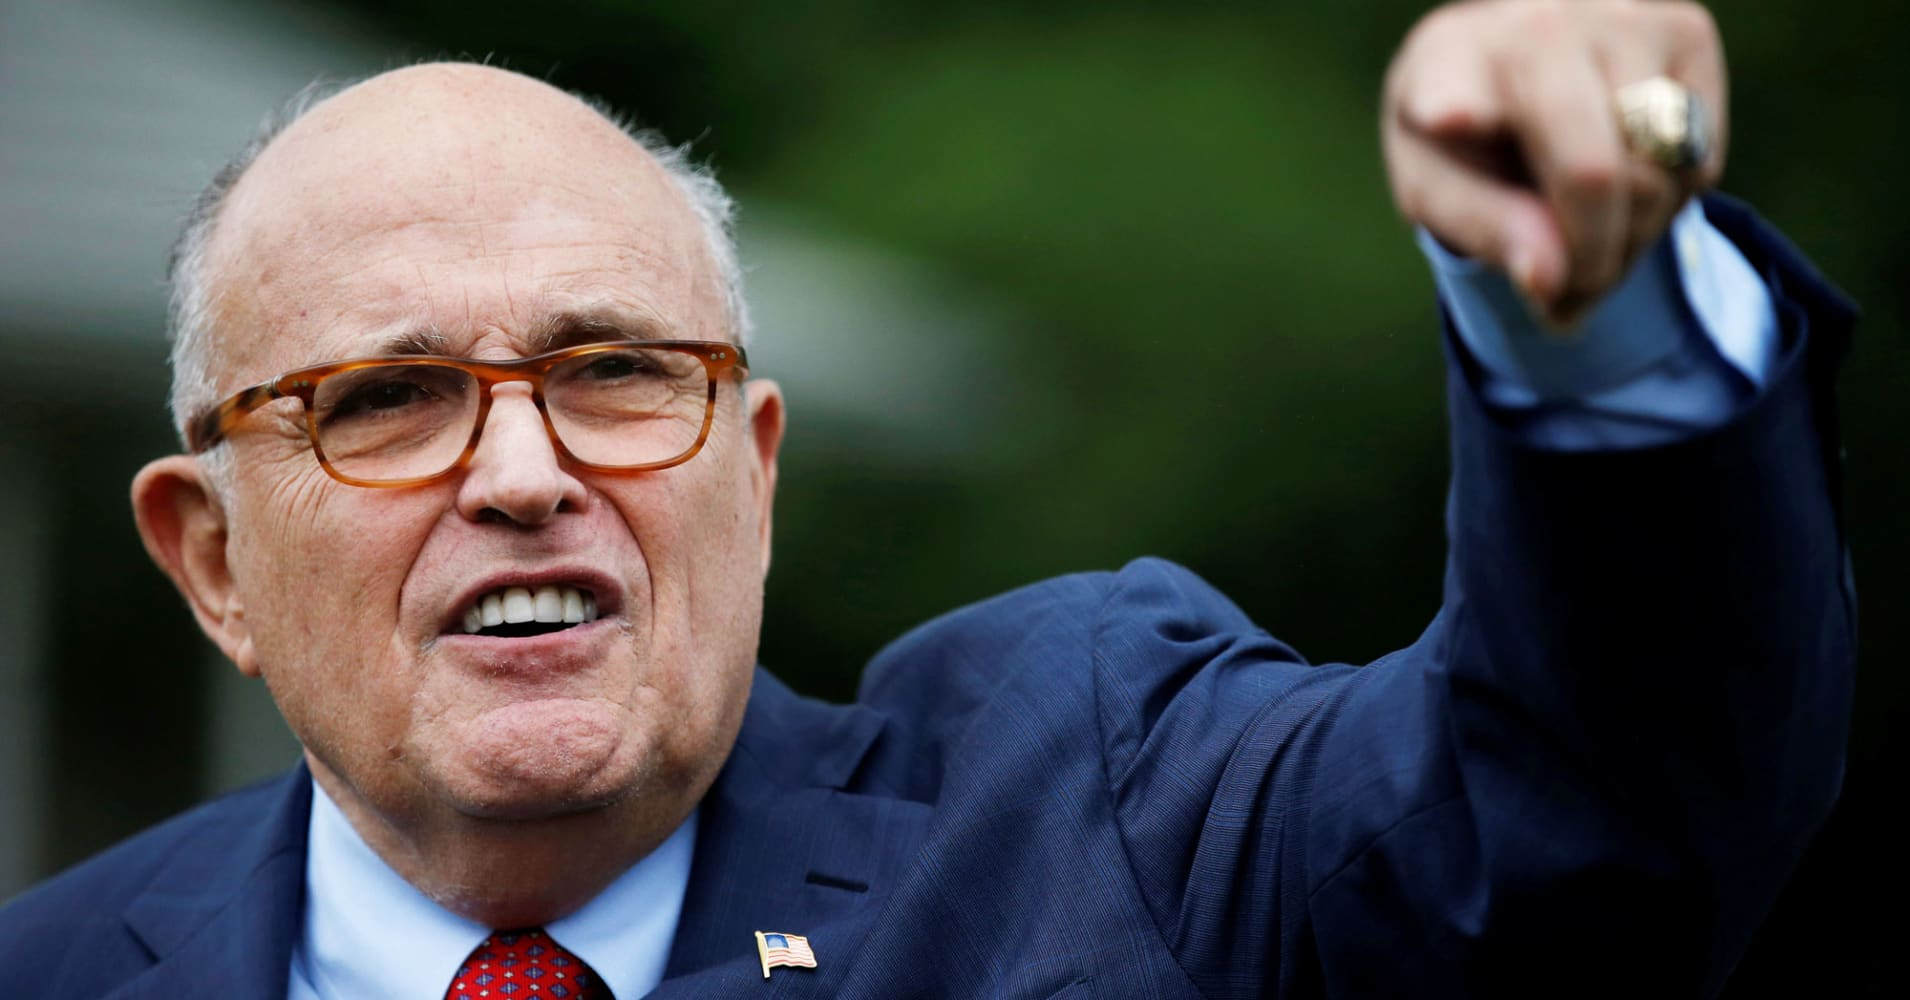 Rudy Giuliani: I wouldn't hand over President Trump's phones without preconditions if Mueller asked